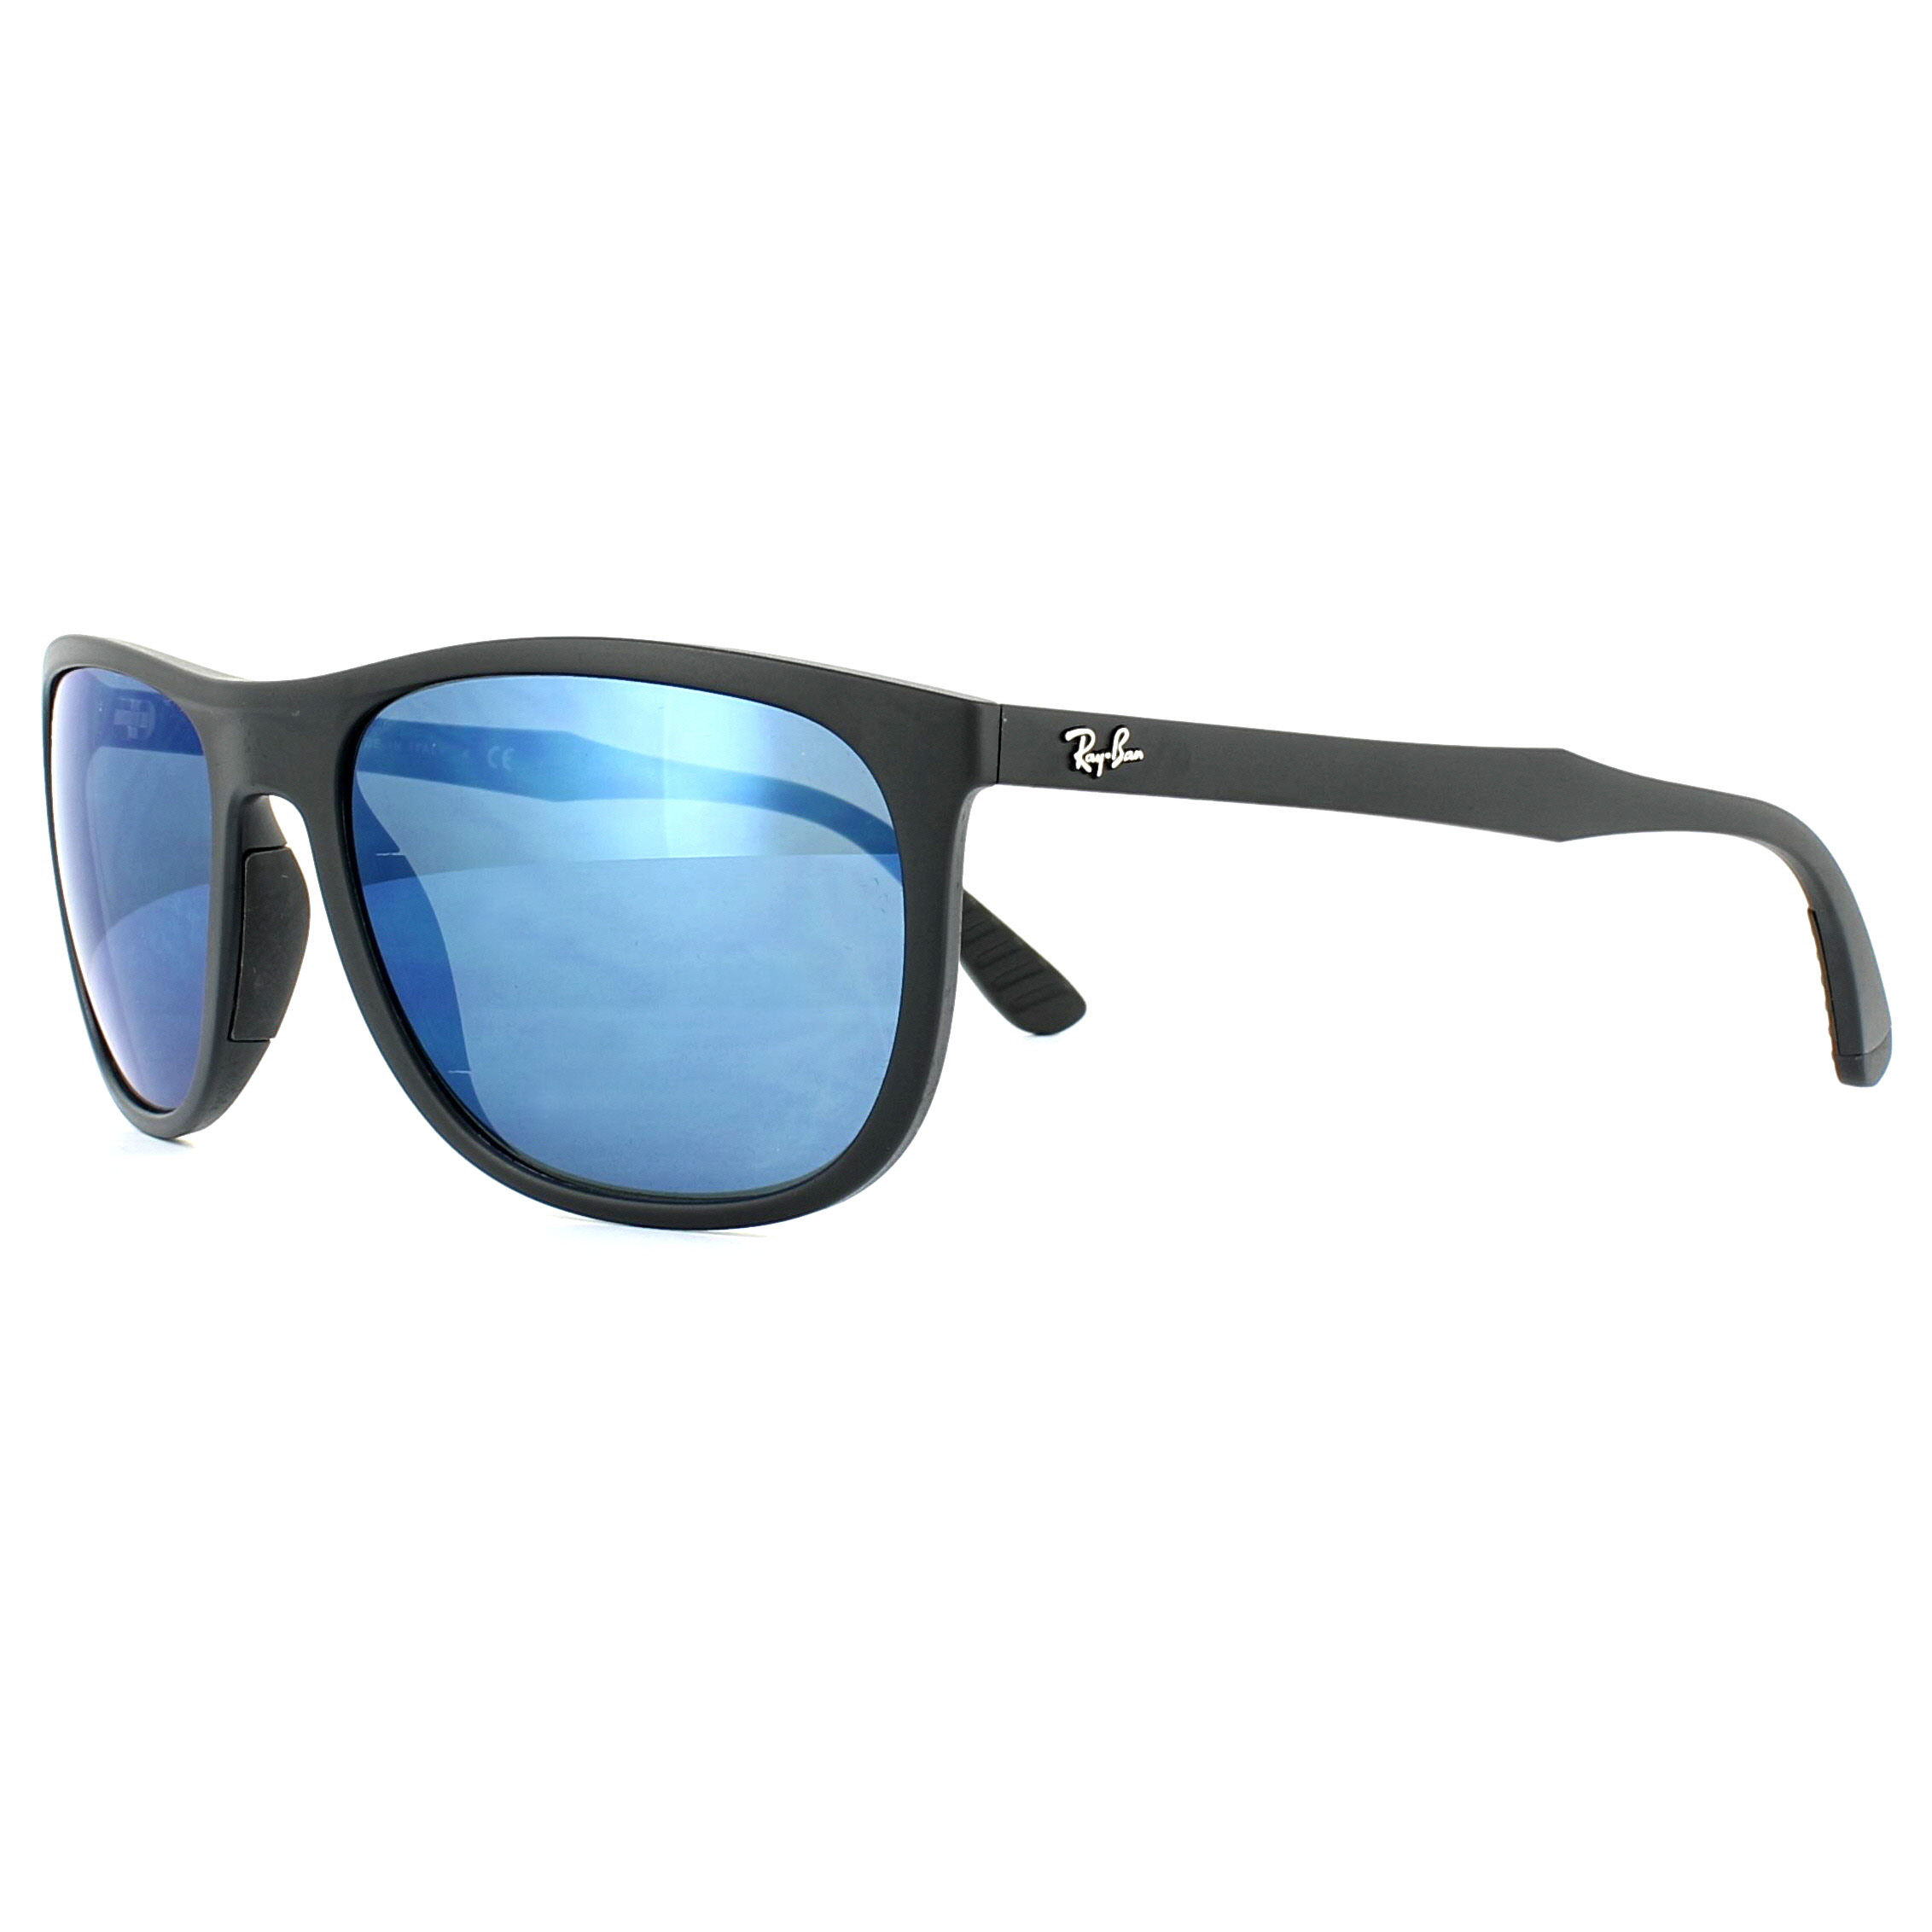 57a0184e47 Sentinel Ray-Ban Sunglasses RB4291 601S55 Black Blue Mirror